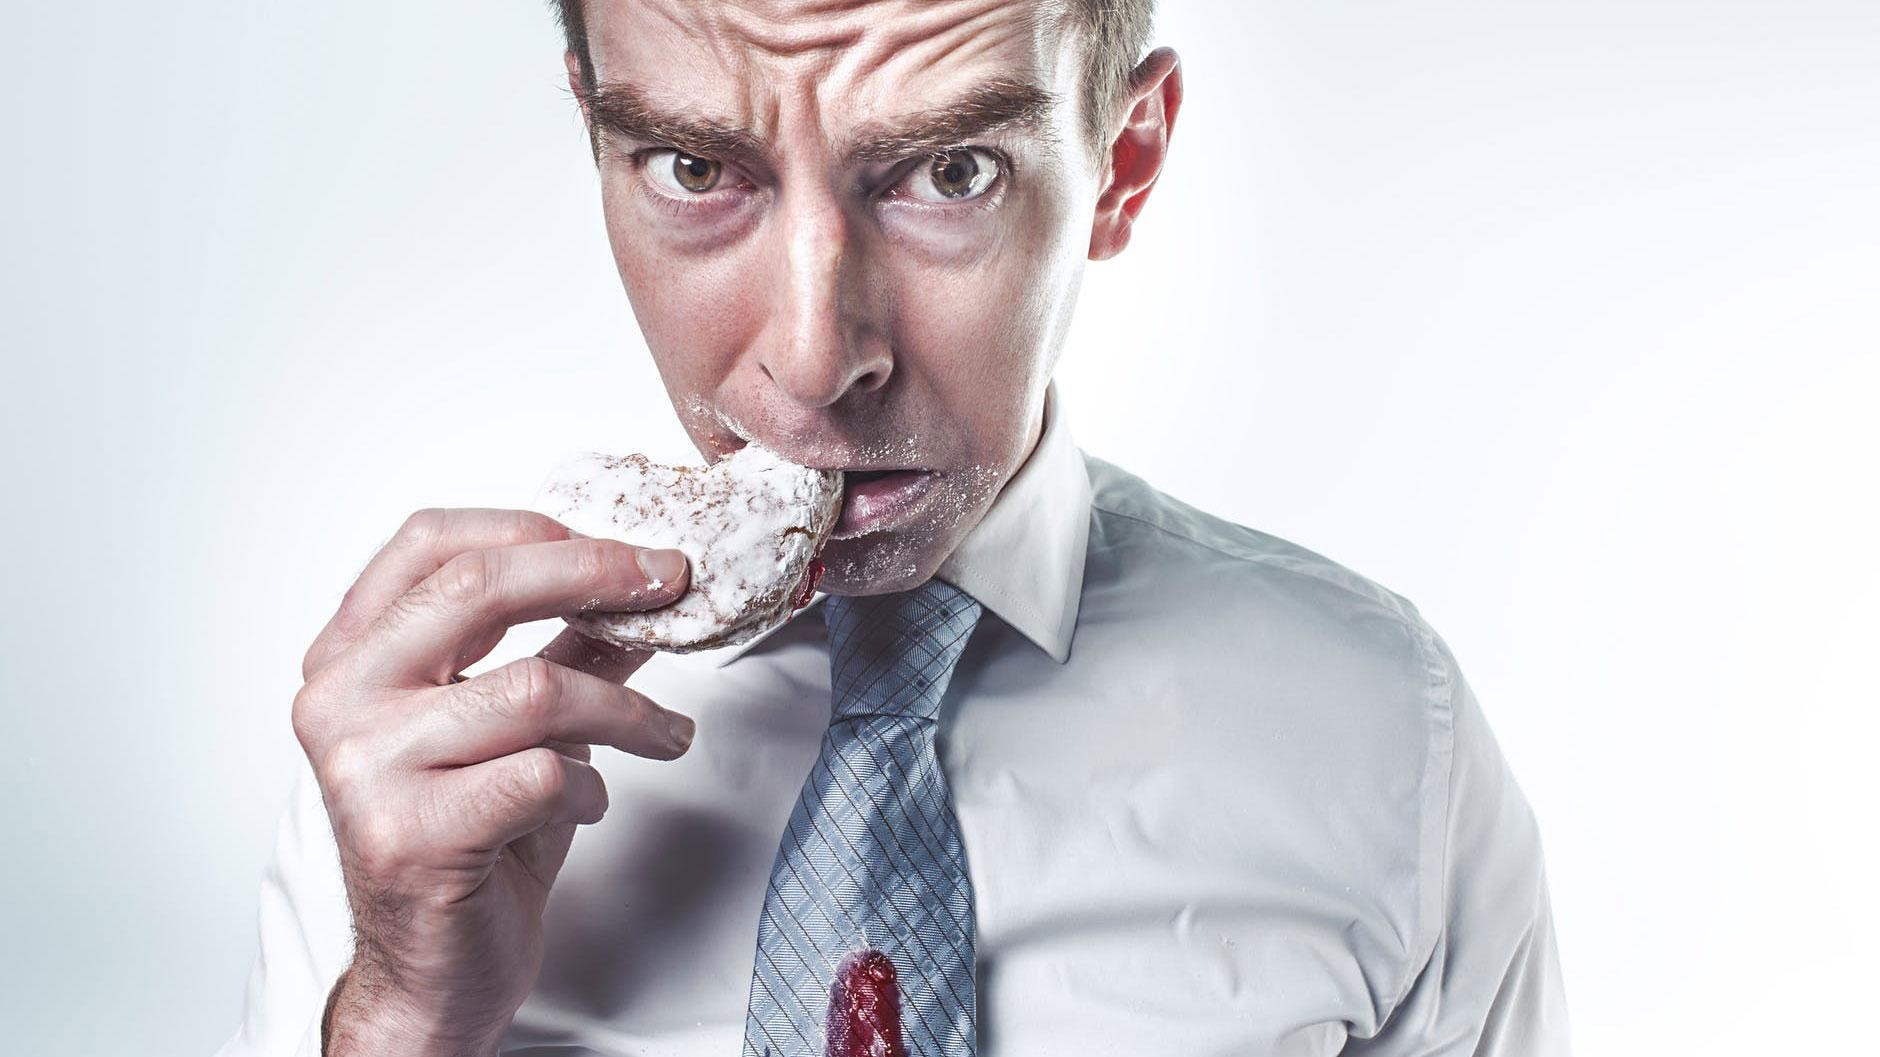 are-you-stress-eating-7-tips-to-stop-doing-it